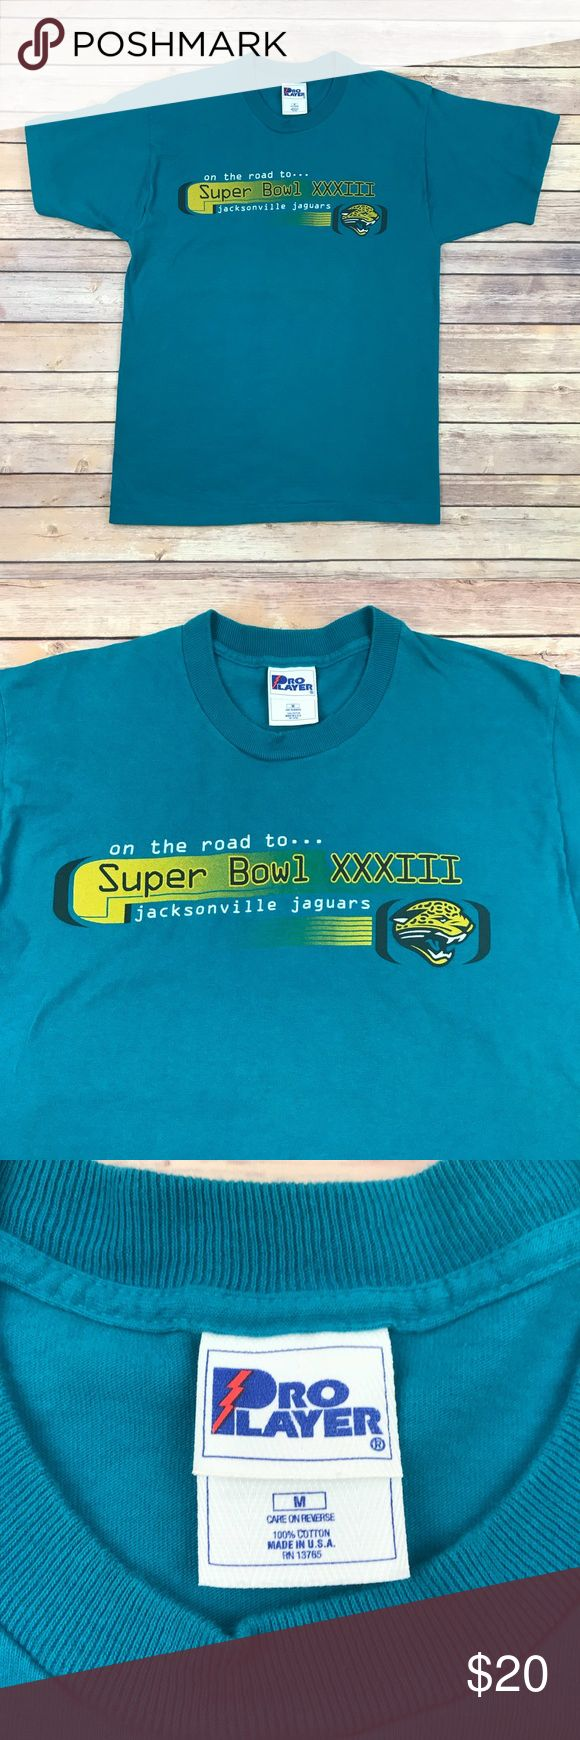 "Vintage Jacksonville Jaguars Graphic Tee Vintage Jacksonville Jaguars Graphic Tee ""On the road to Super Bowl XXXIII"" 1998 Season Schedule Size Medium 100% Cotton Made in USA  Measurements laying flat: underarm to underarm- 19.5"" center back length- 27.5"" M2 Proplayer Shirts Tees - Short Sleeve"